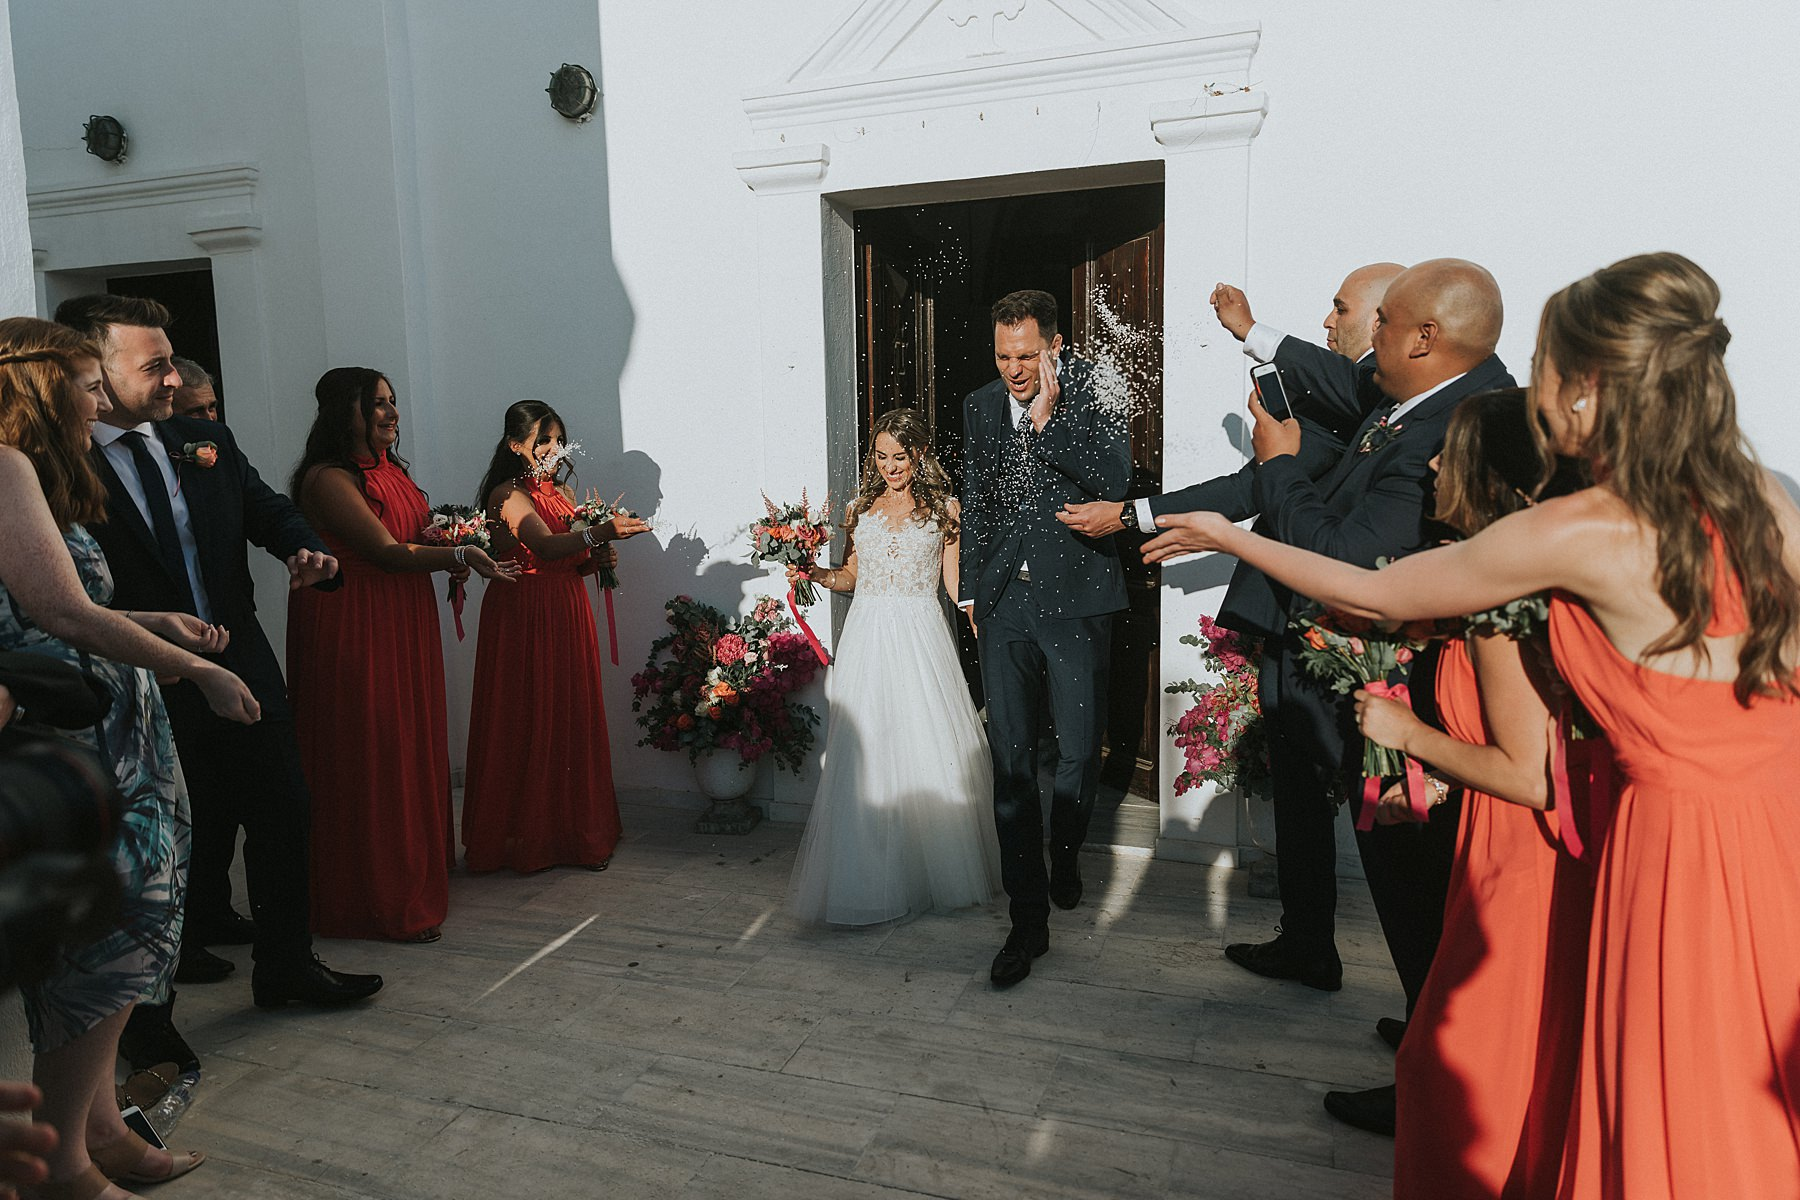 greek orthodox ceremony rice throwing at bride and groom in santorini wedding photography